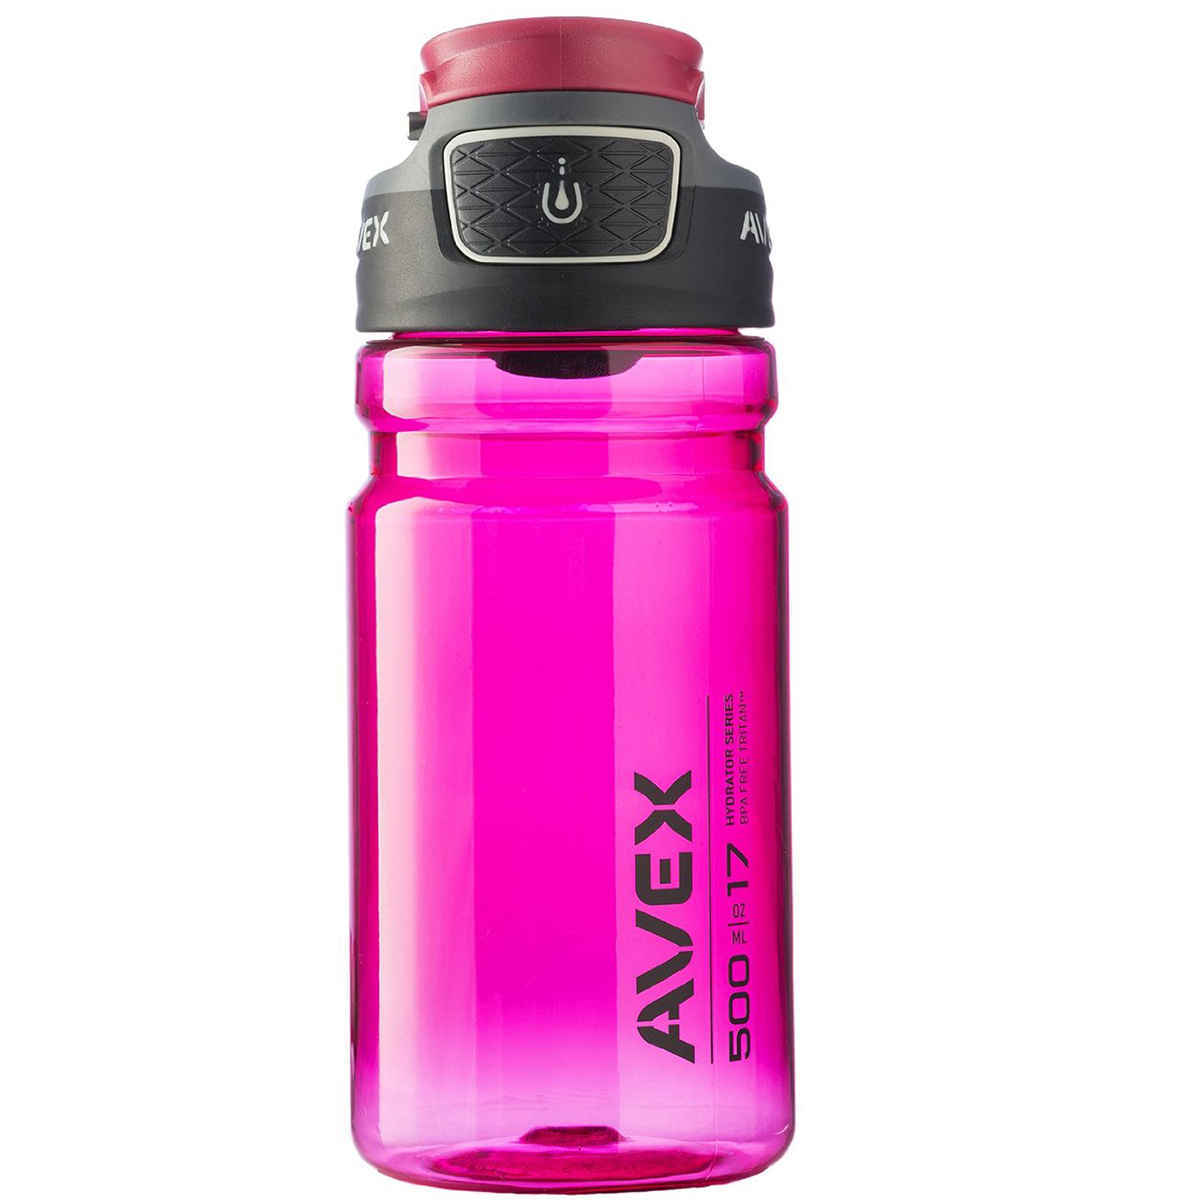 Avex 17 oz. FreeFlow Autoseal Water Bottle